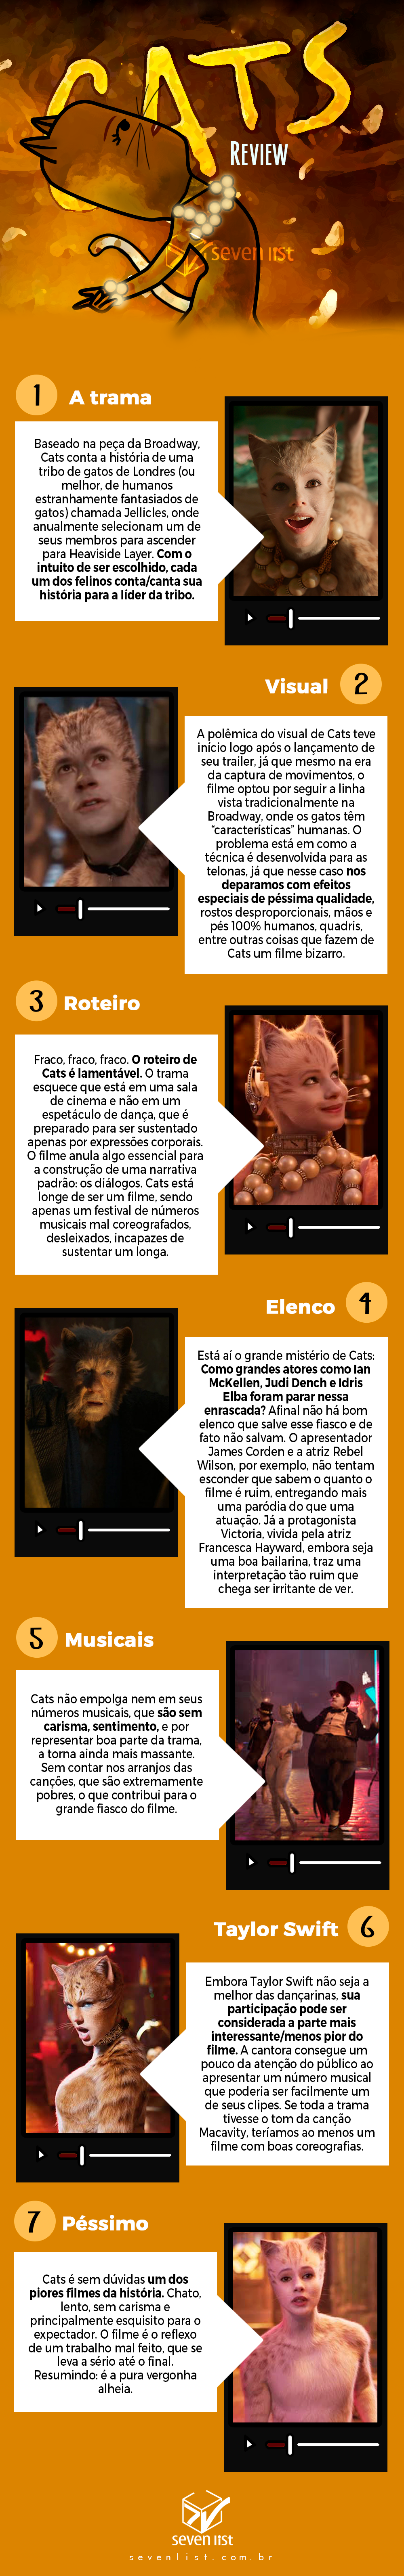 Seven List - Crítica do filme musical Cats